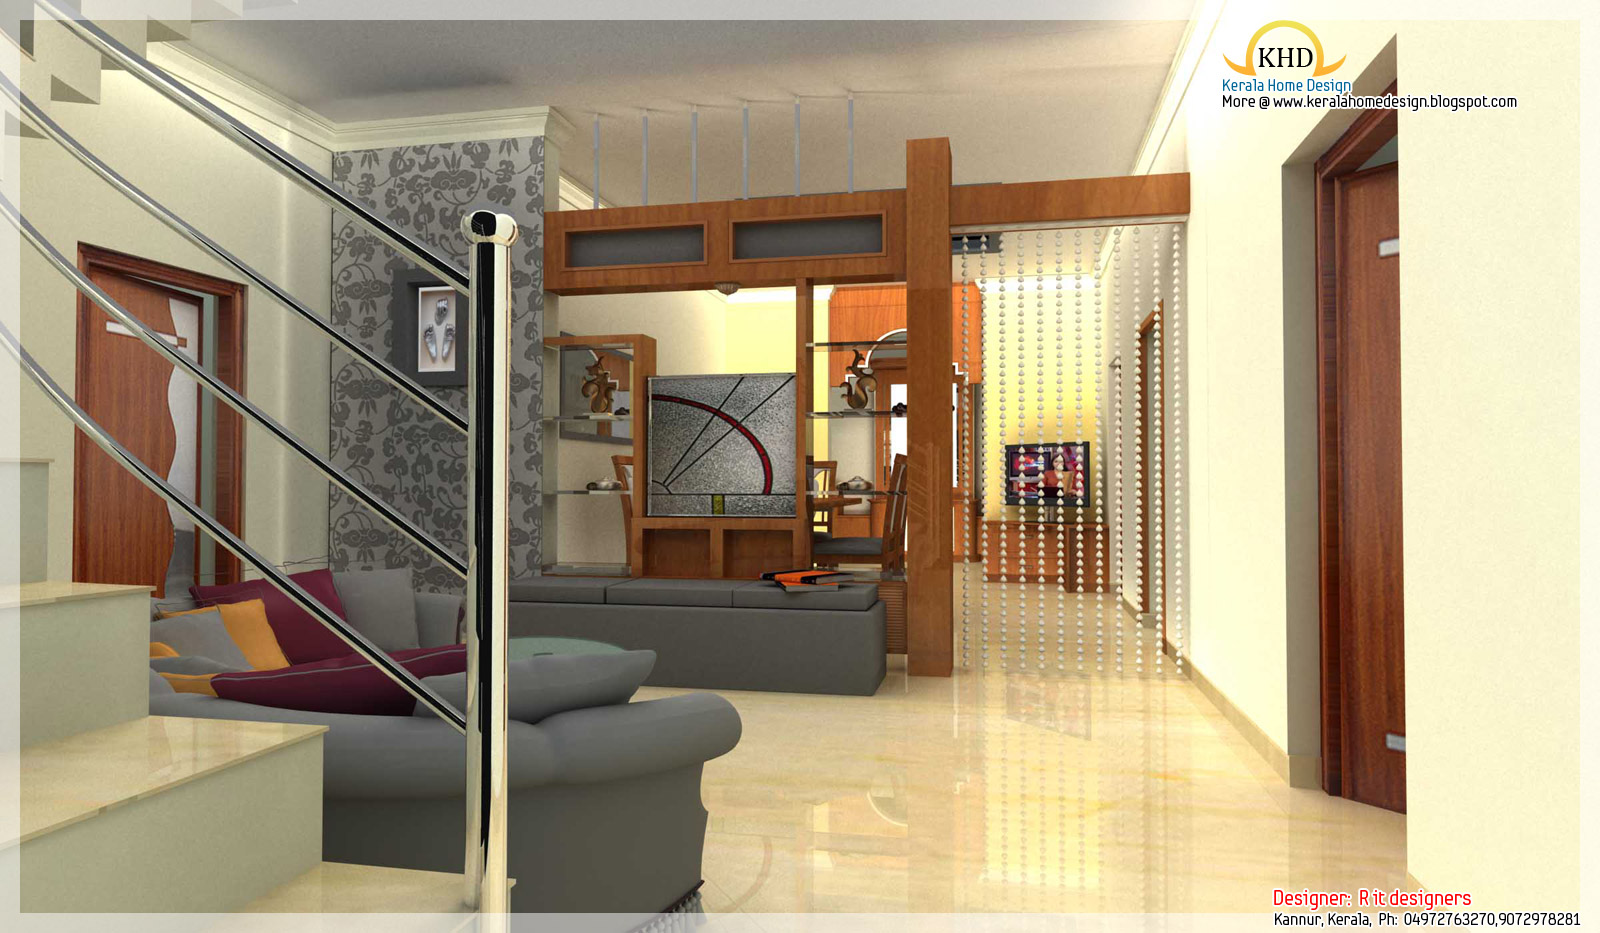 Interior design idea renderings kerala home design and for Indian living room interior design photo gallery